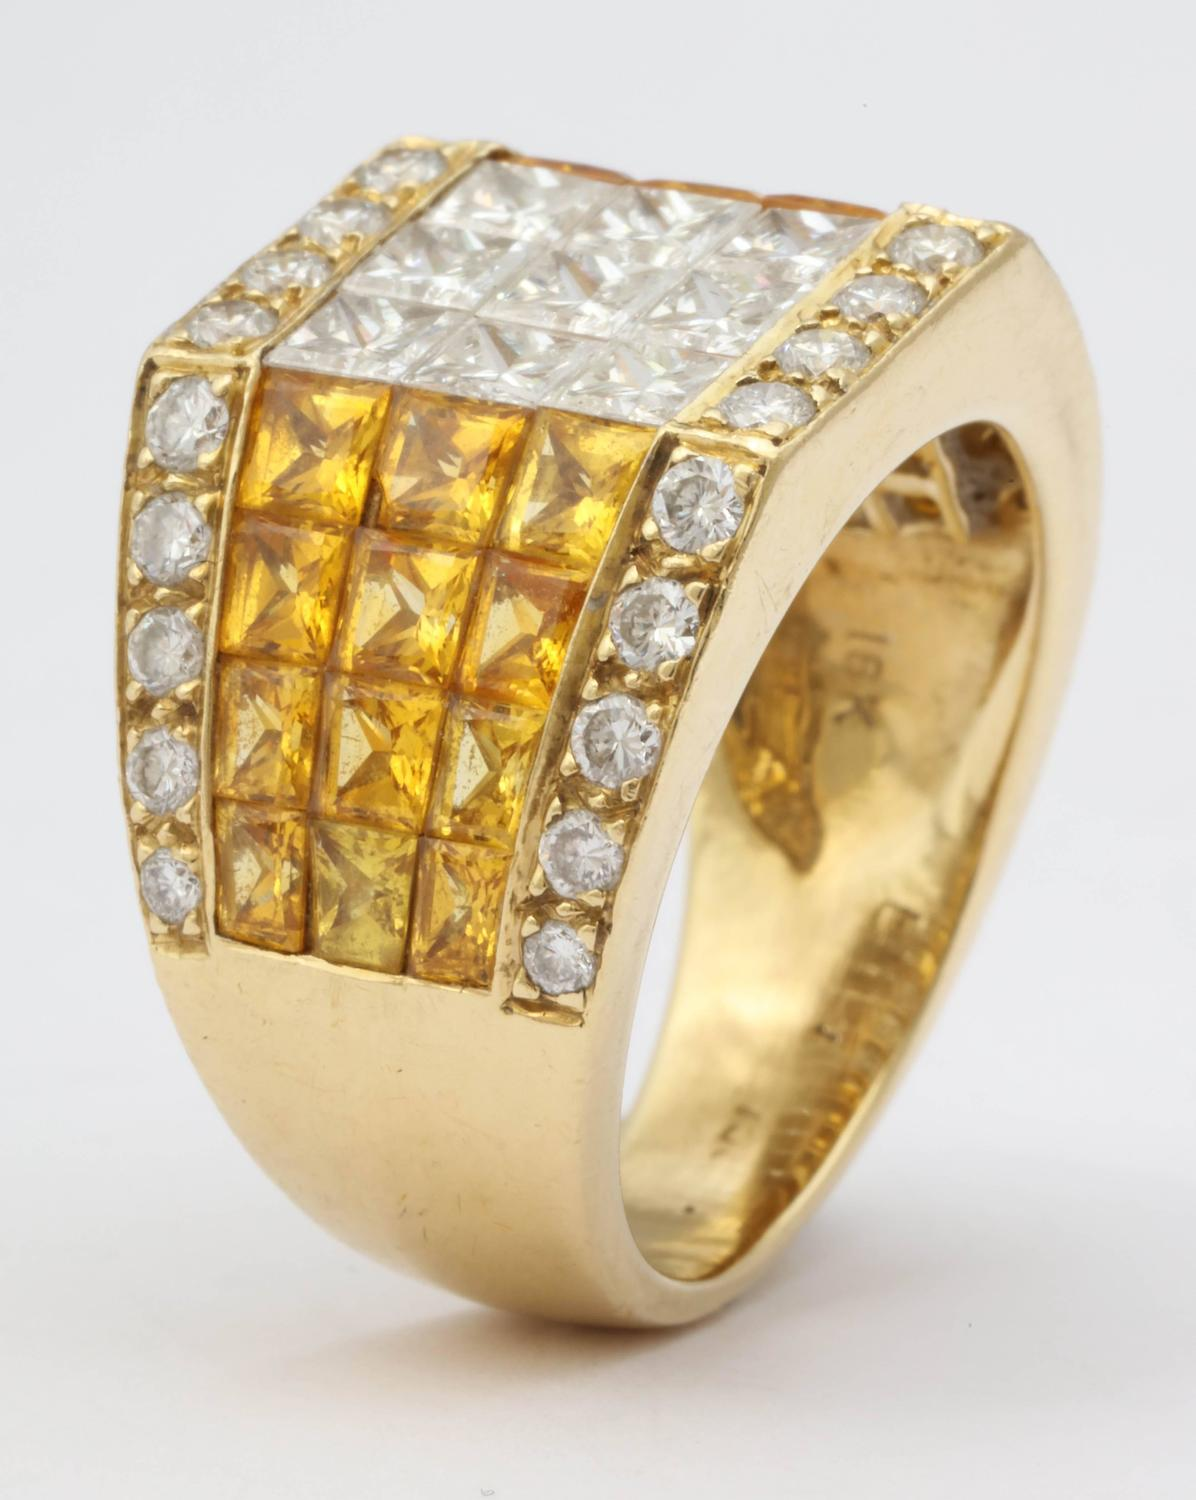 Intense Yellow Sapphire and Diamond Ring For Sale at 1stdibs